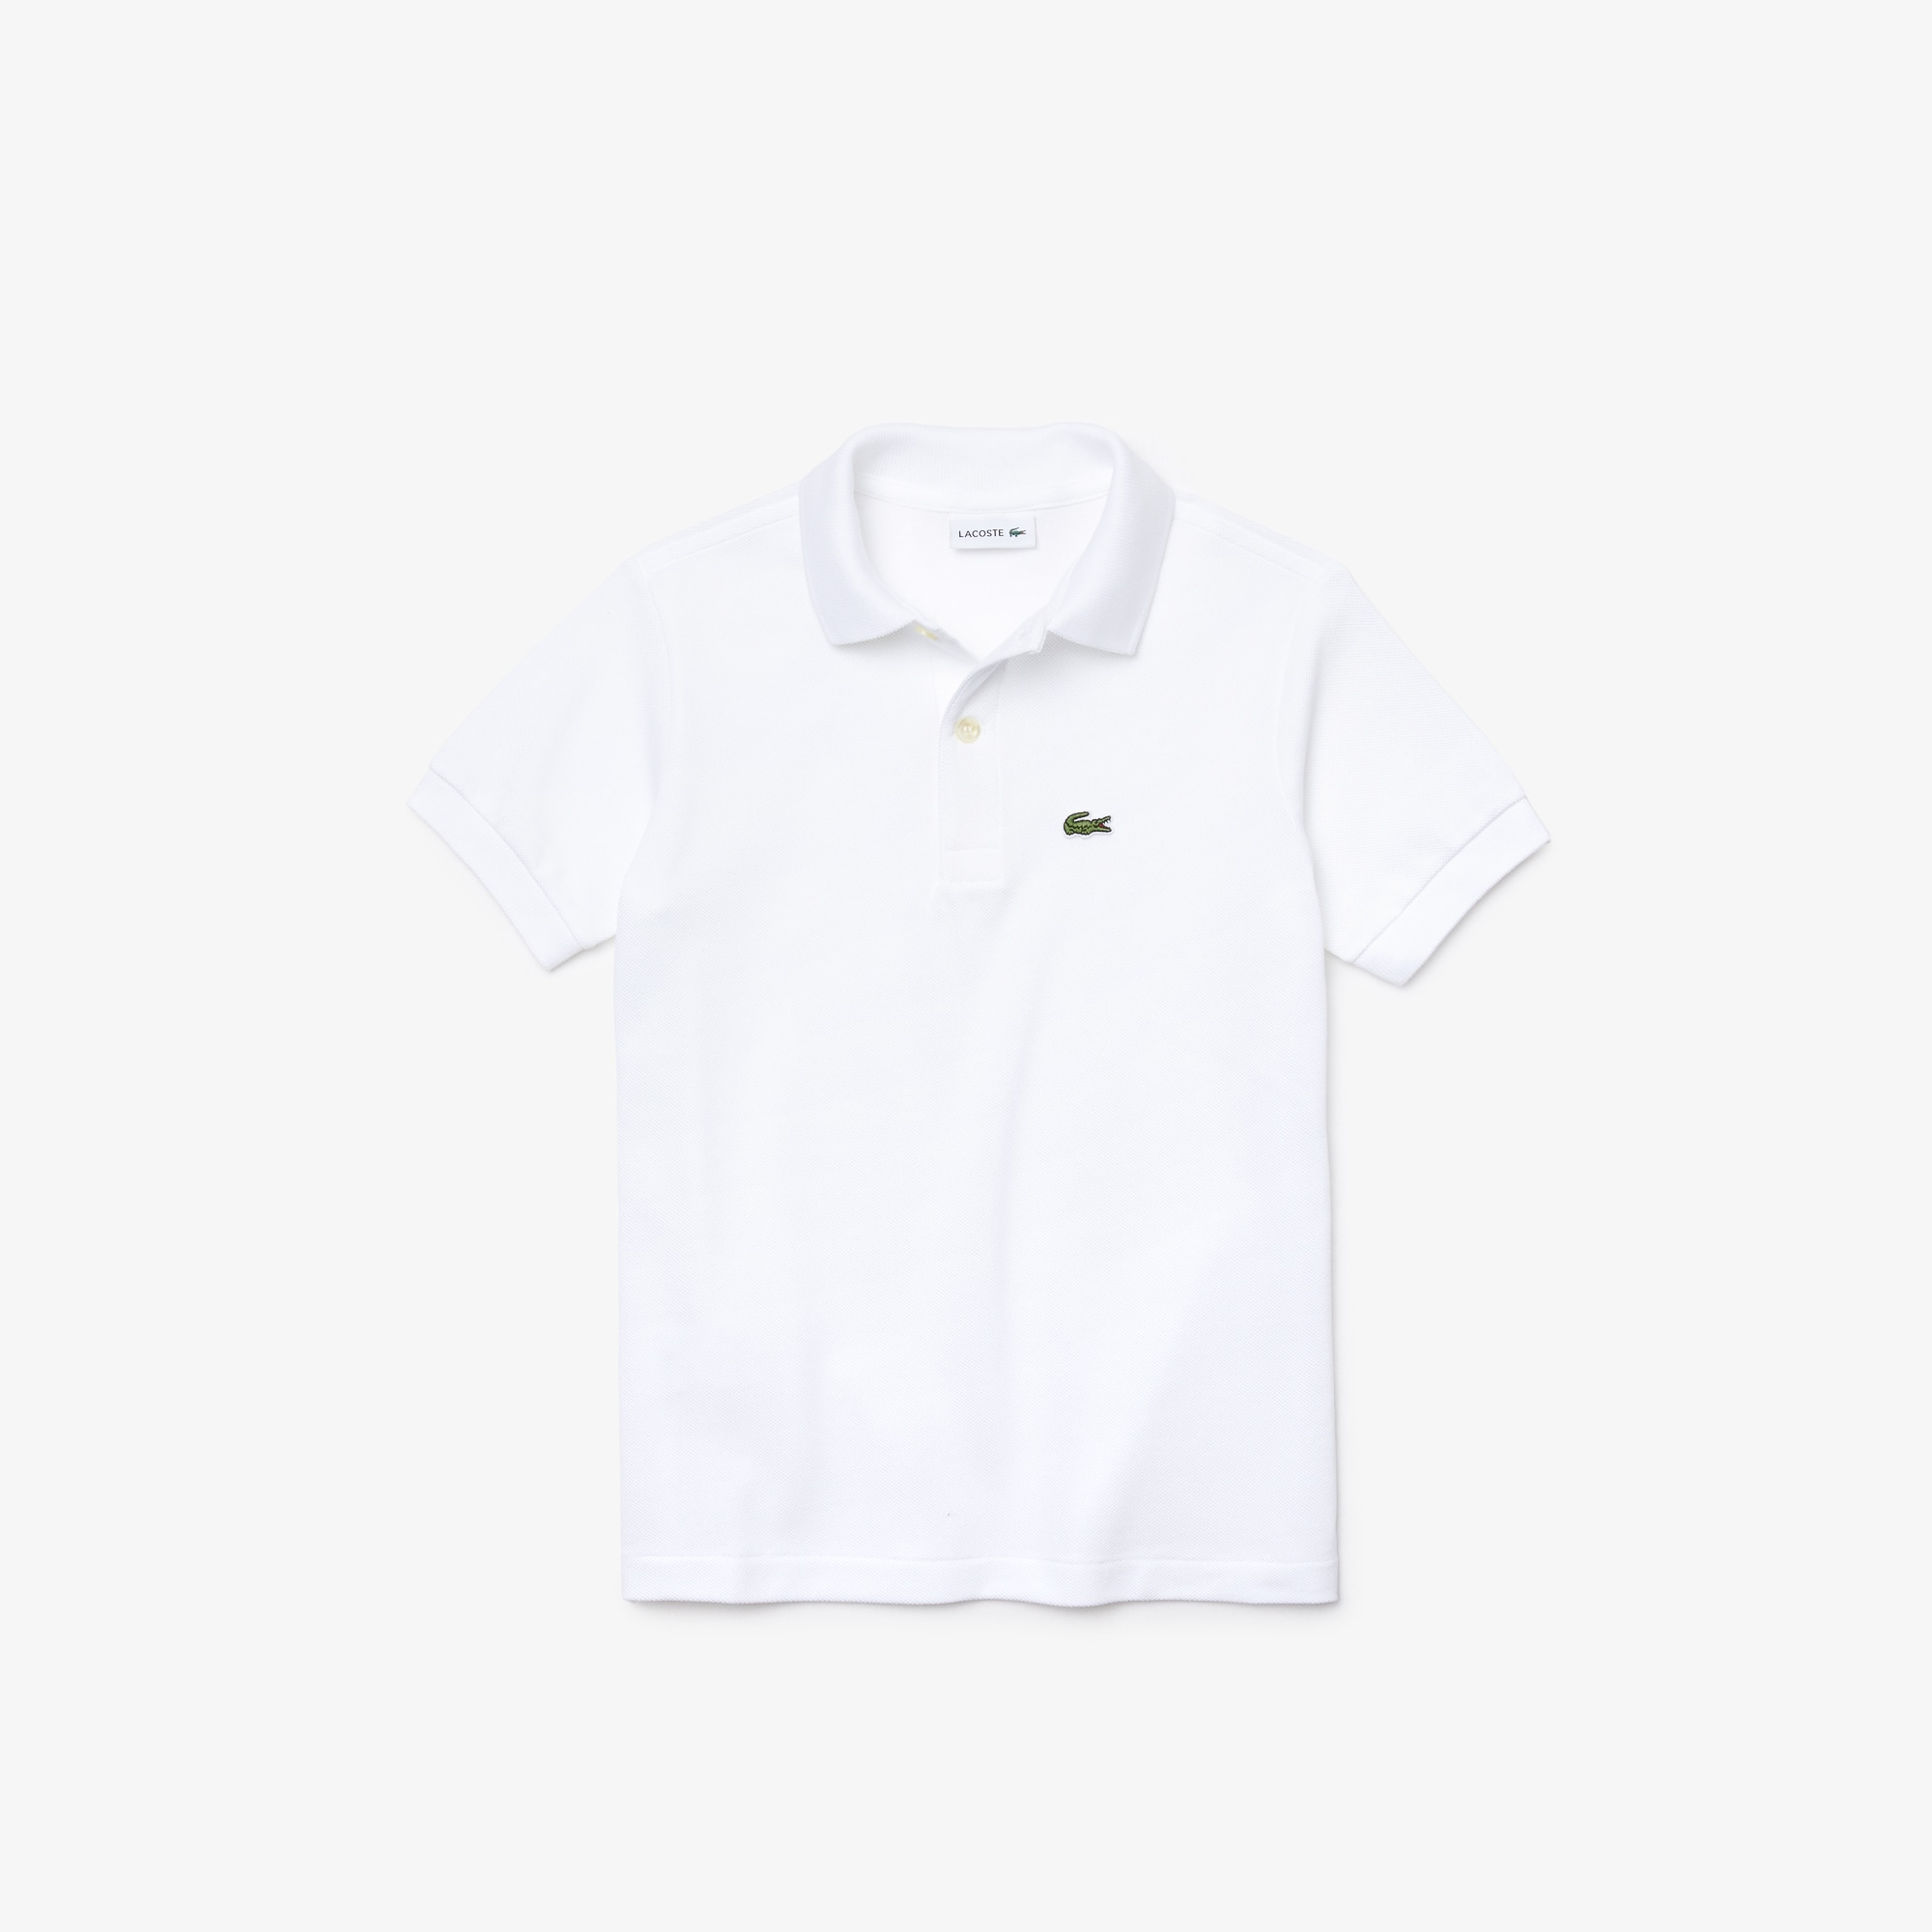 Customized Kids Lacoste Polo